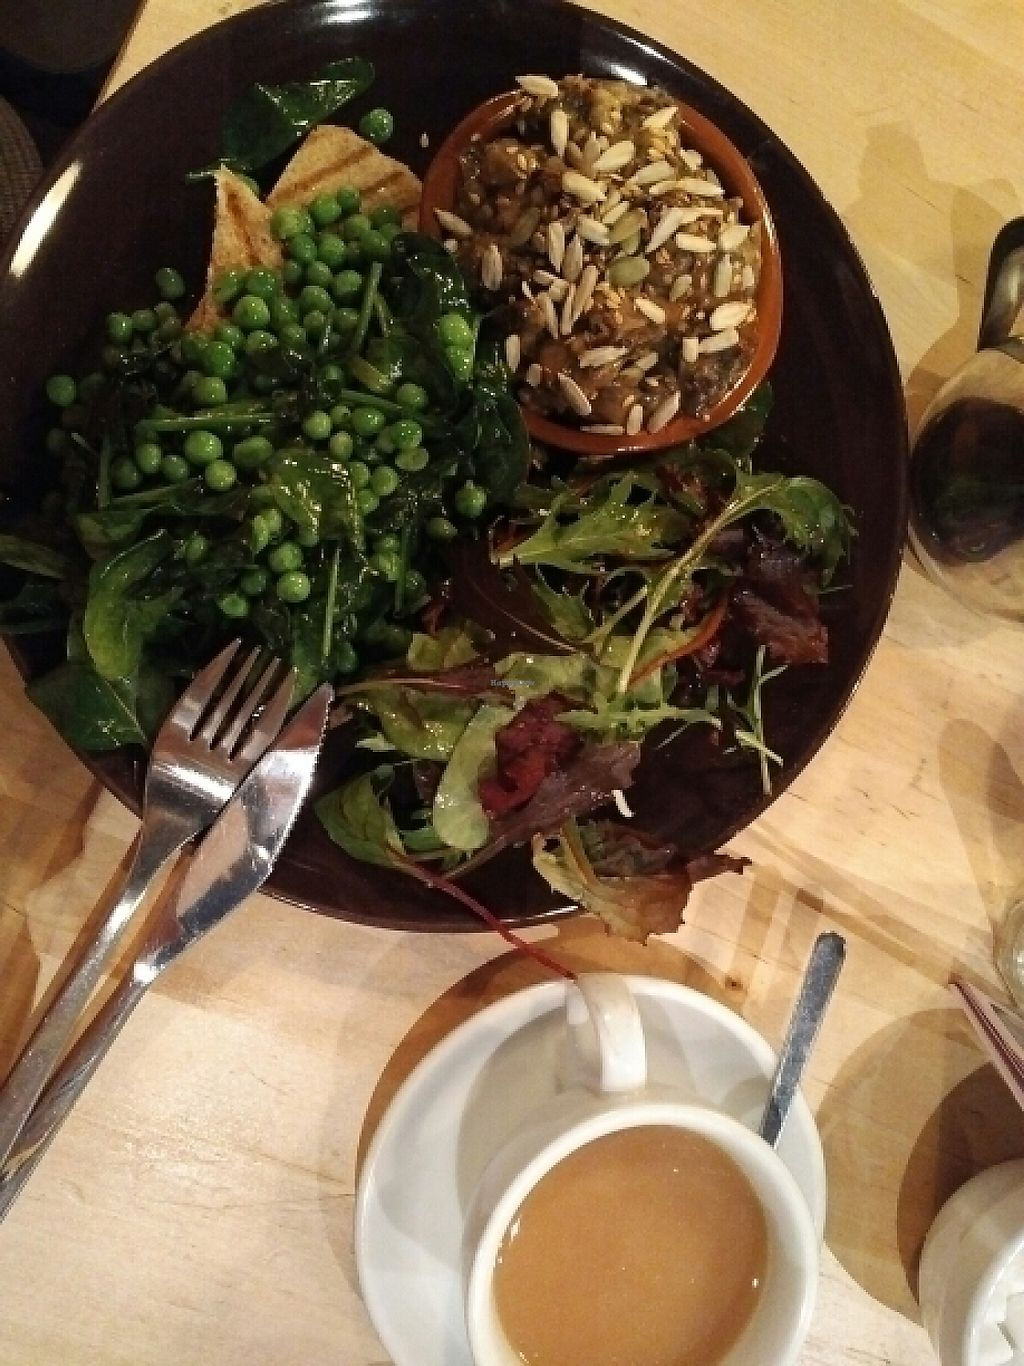 """Photo of Something at The Glad Cafe  by <a href=""""/members/profile/annie.virtual"""">annie.virtual</a> <br/>mushroom ragout with peas and salad for breakfast <br/> May 17, 2017  - <a href='/contact/abuse/image/92165/259597'>Report</a>"""